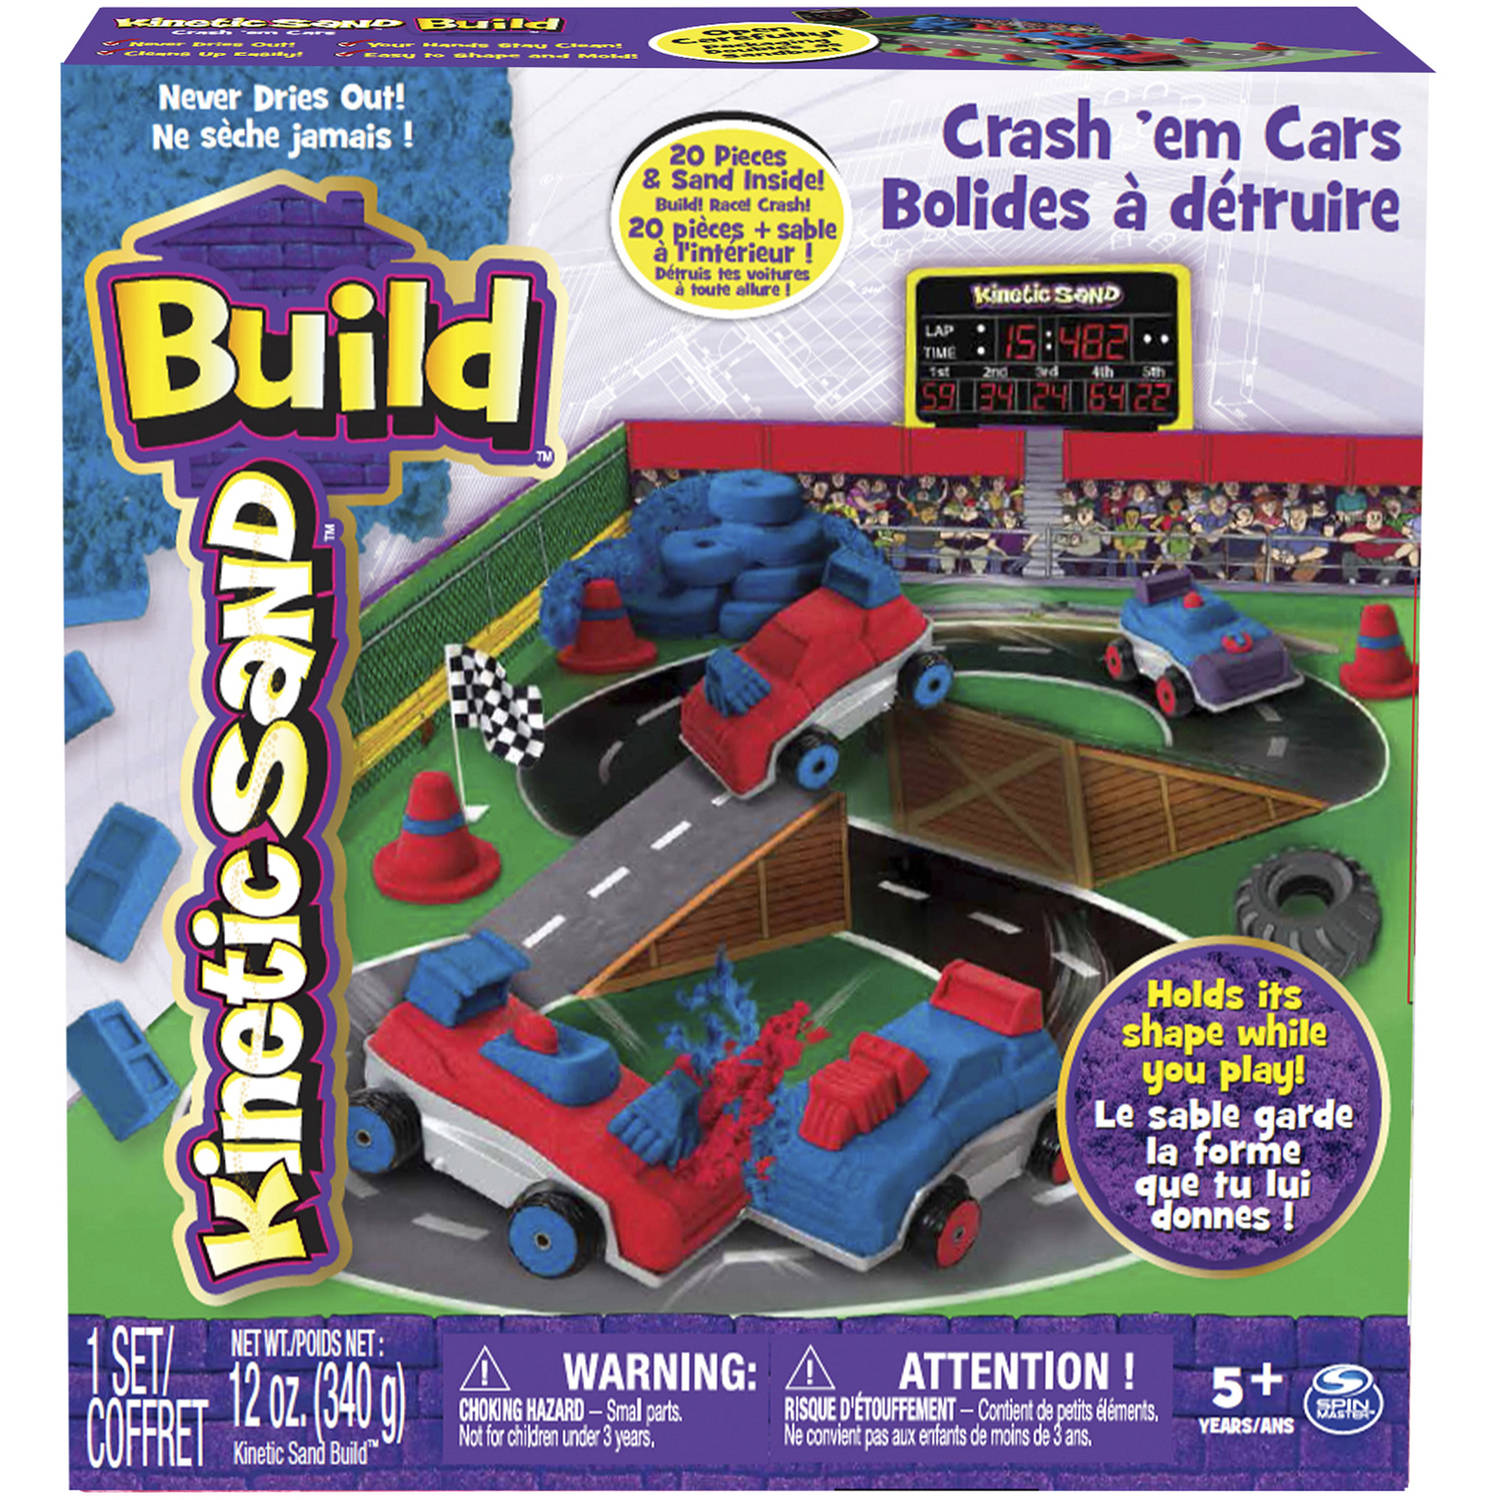 The One & Only Kinetic Sand Build Crash 'Em Cars Playset